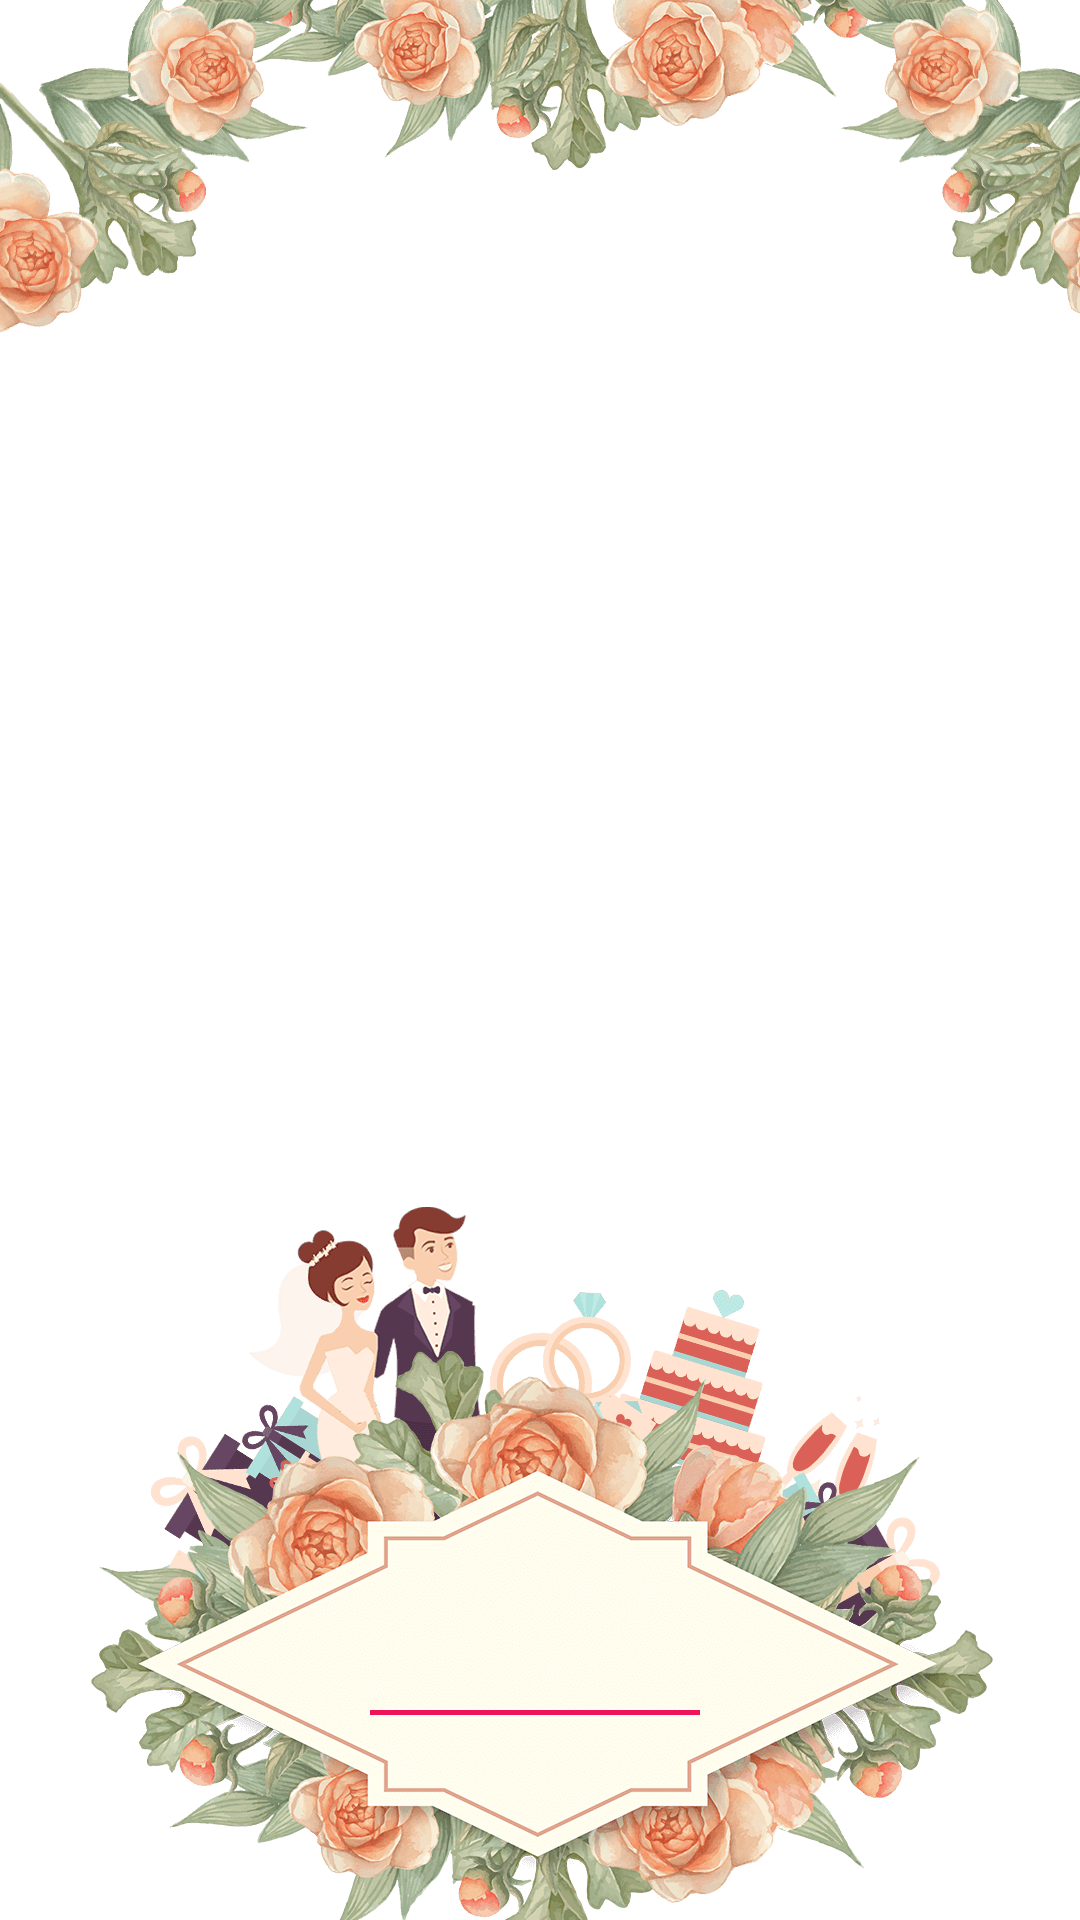 Pastel Floral Wedding Snapchat Filter Geofilter Maker On